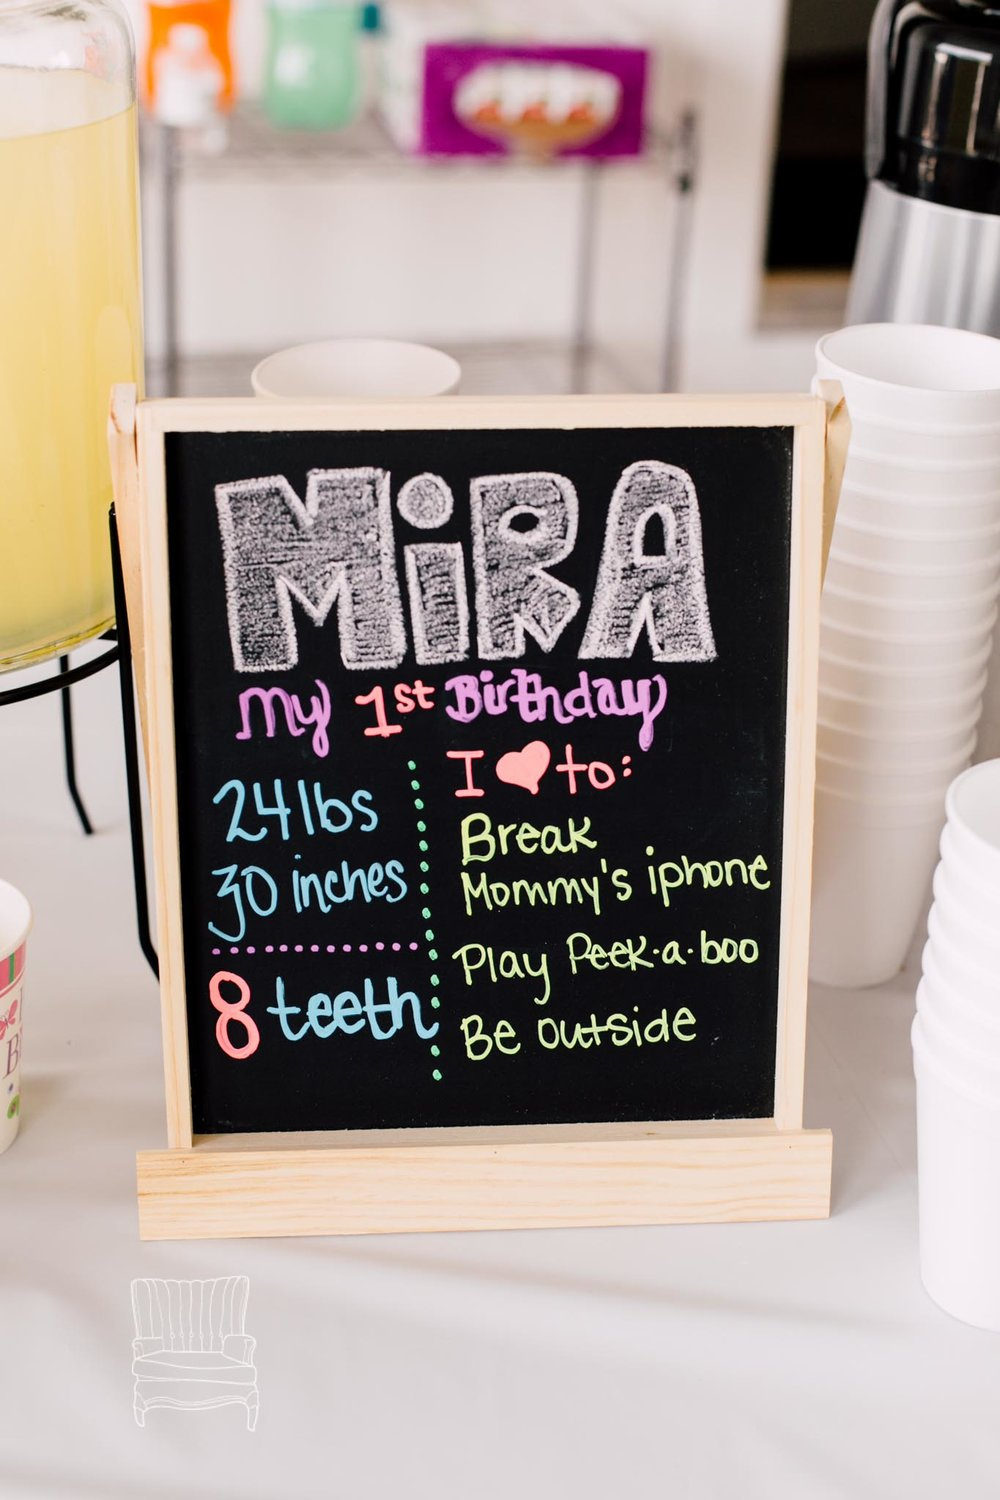 bellingham-one-year-birthday-party-photographer-mira-2.jpg